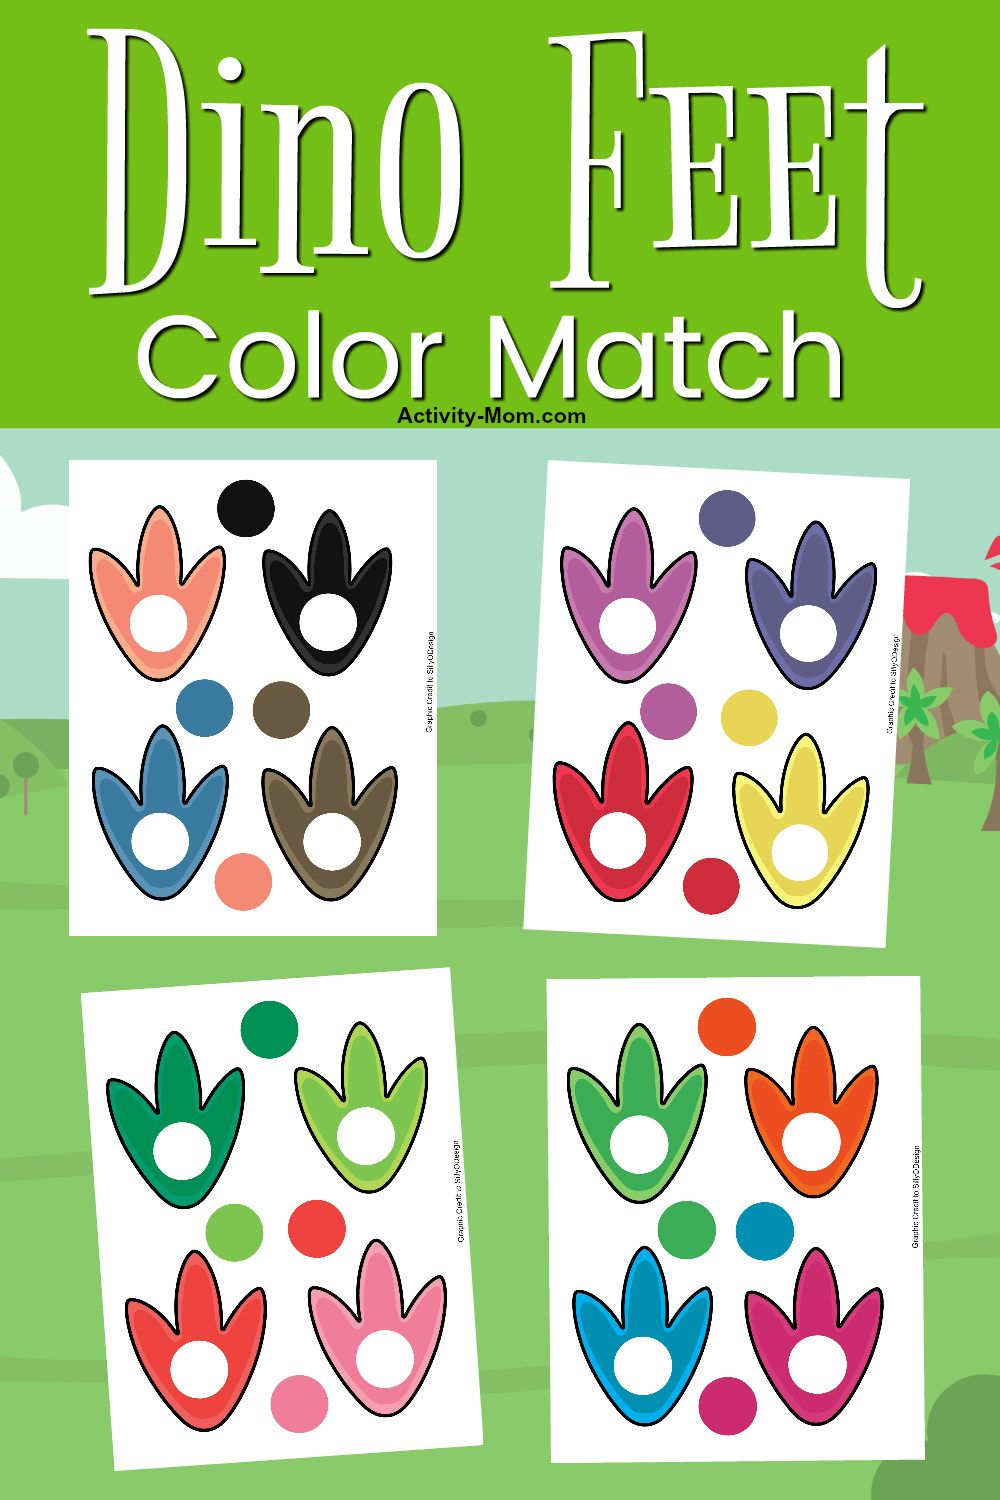 Free Printable Dinosaur Color Matching The Activity Mom Dinosaur Activities Preschool Preschool Color Activities Dinosaur Activities [ 1500 x 1000 Pixel ]